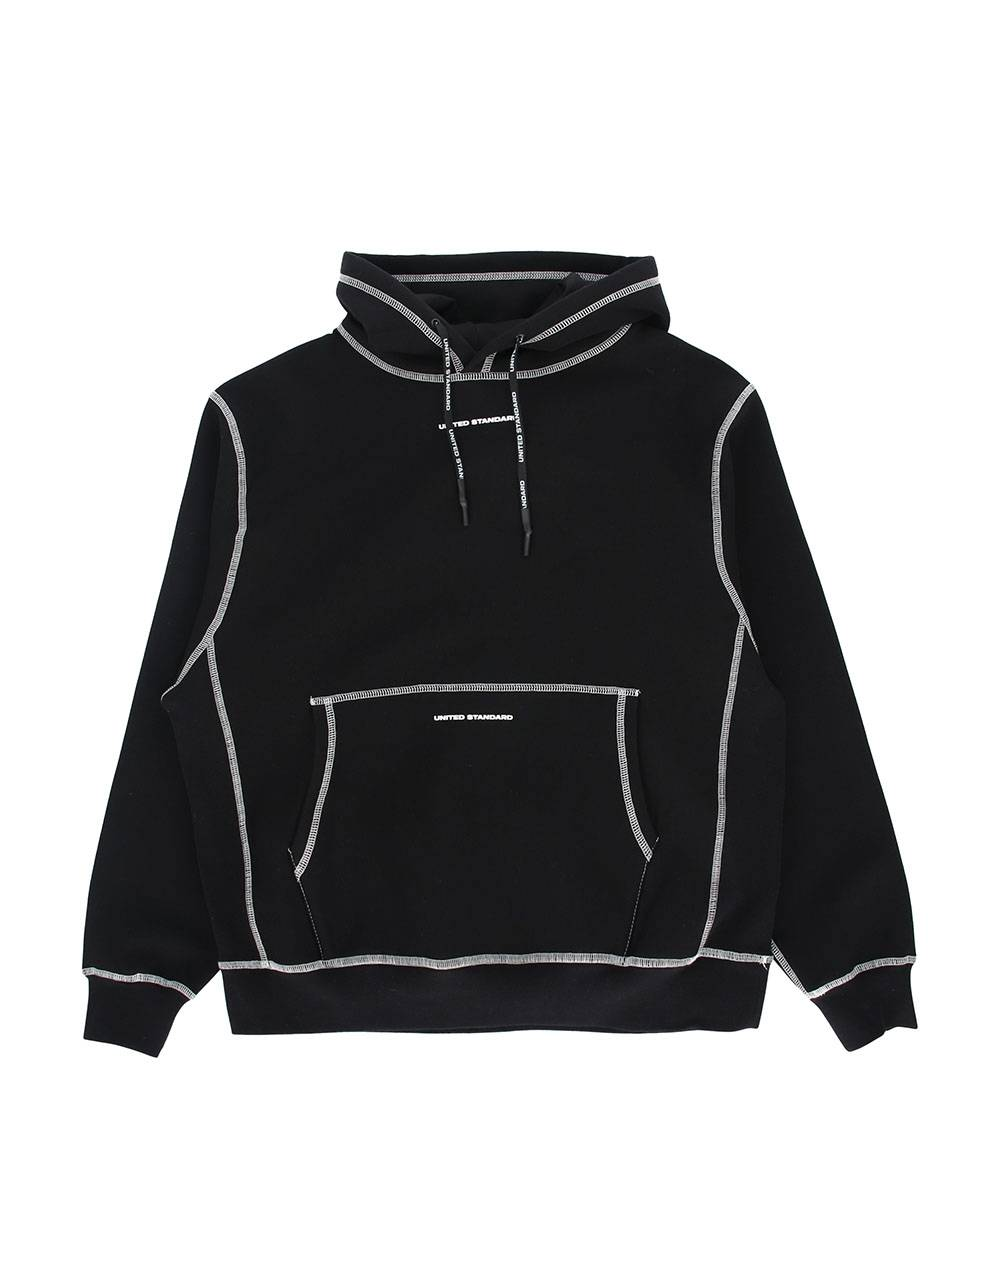 United Standard Logo hoodie - Black United Standard Sweater 185,00 €